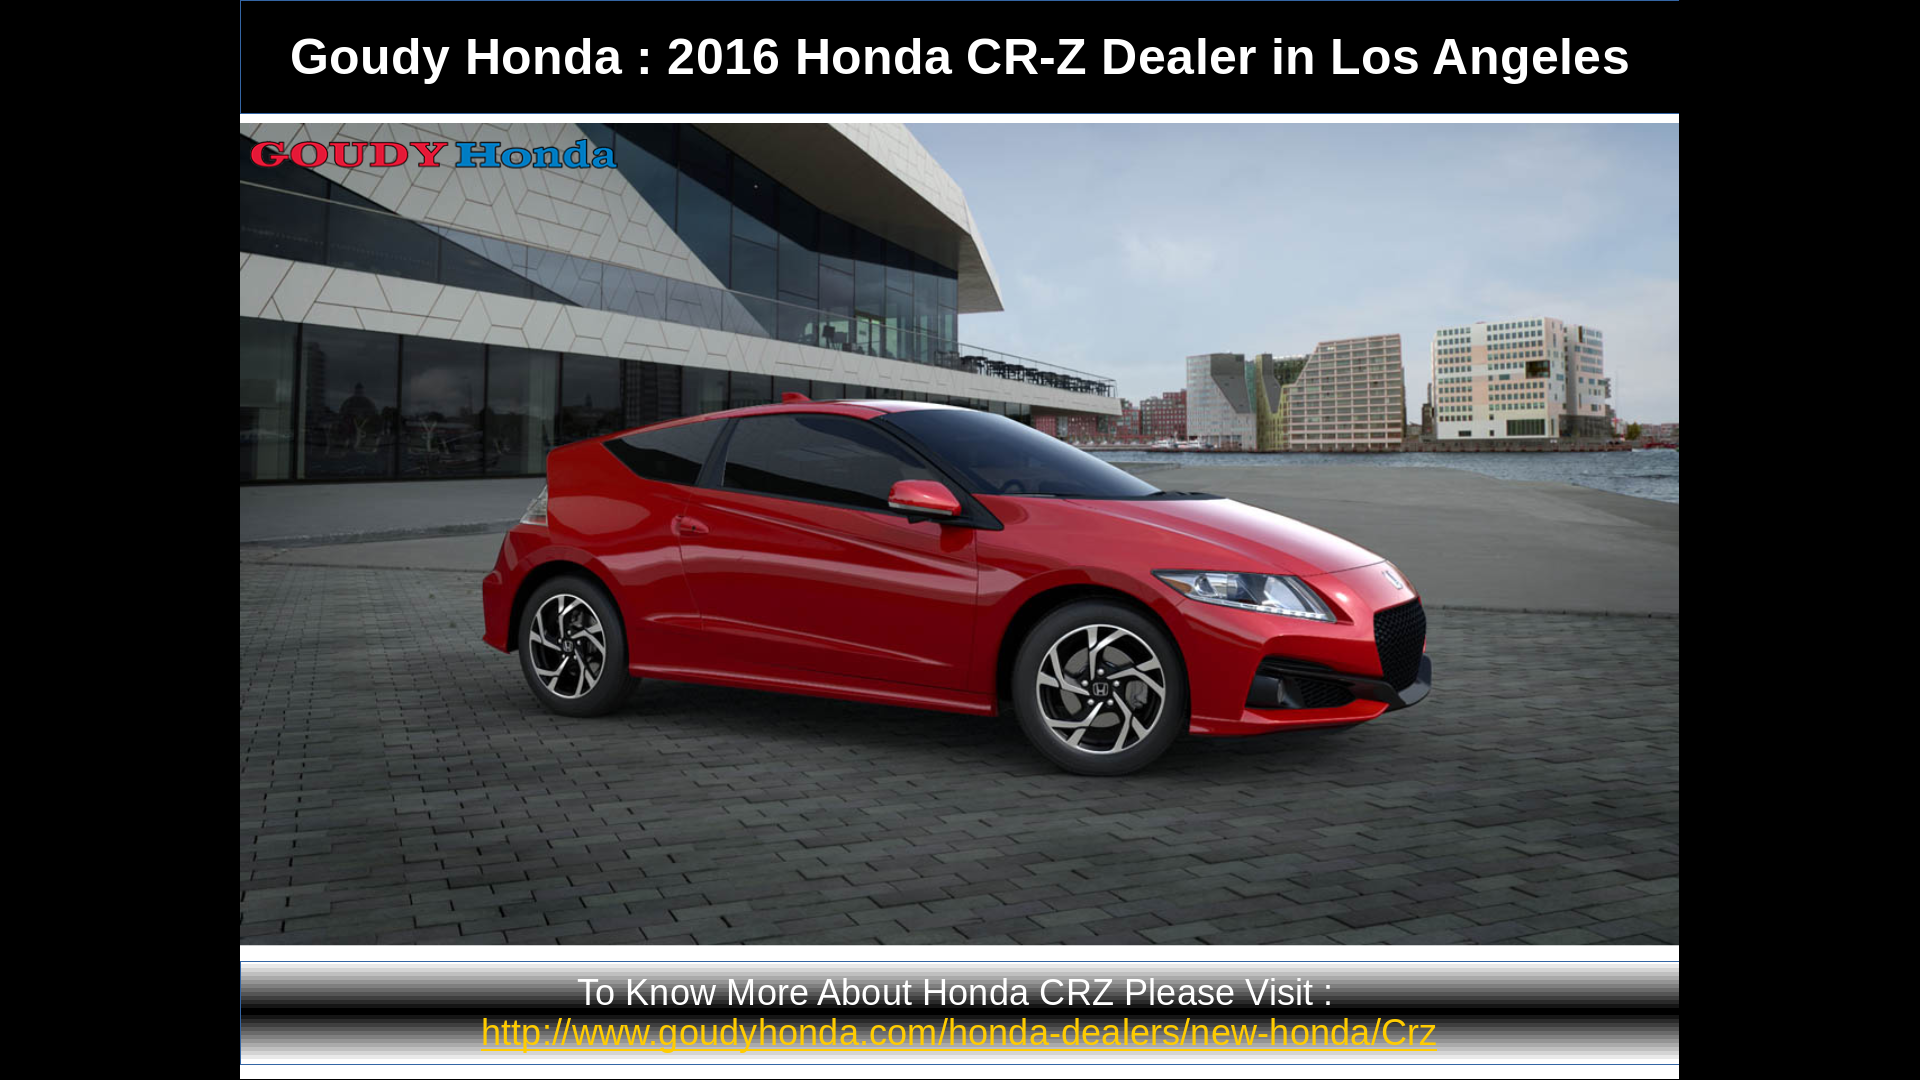 In Case You Want To Check Out Honda CR Z In Los Angeles Or Nearby Areas,  Goudy Honda Is Your All Inclusive Los Angeles Honda Dealer.